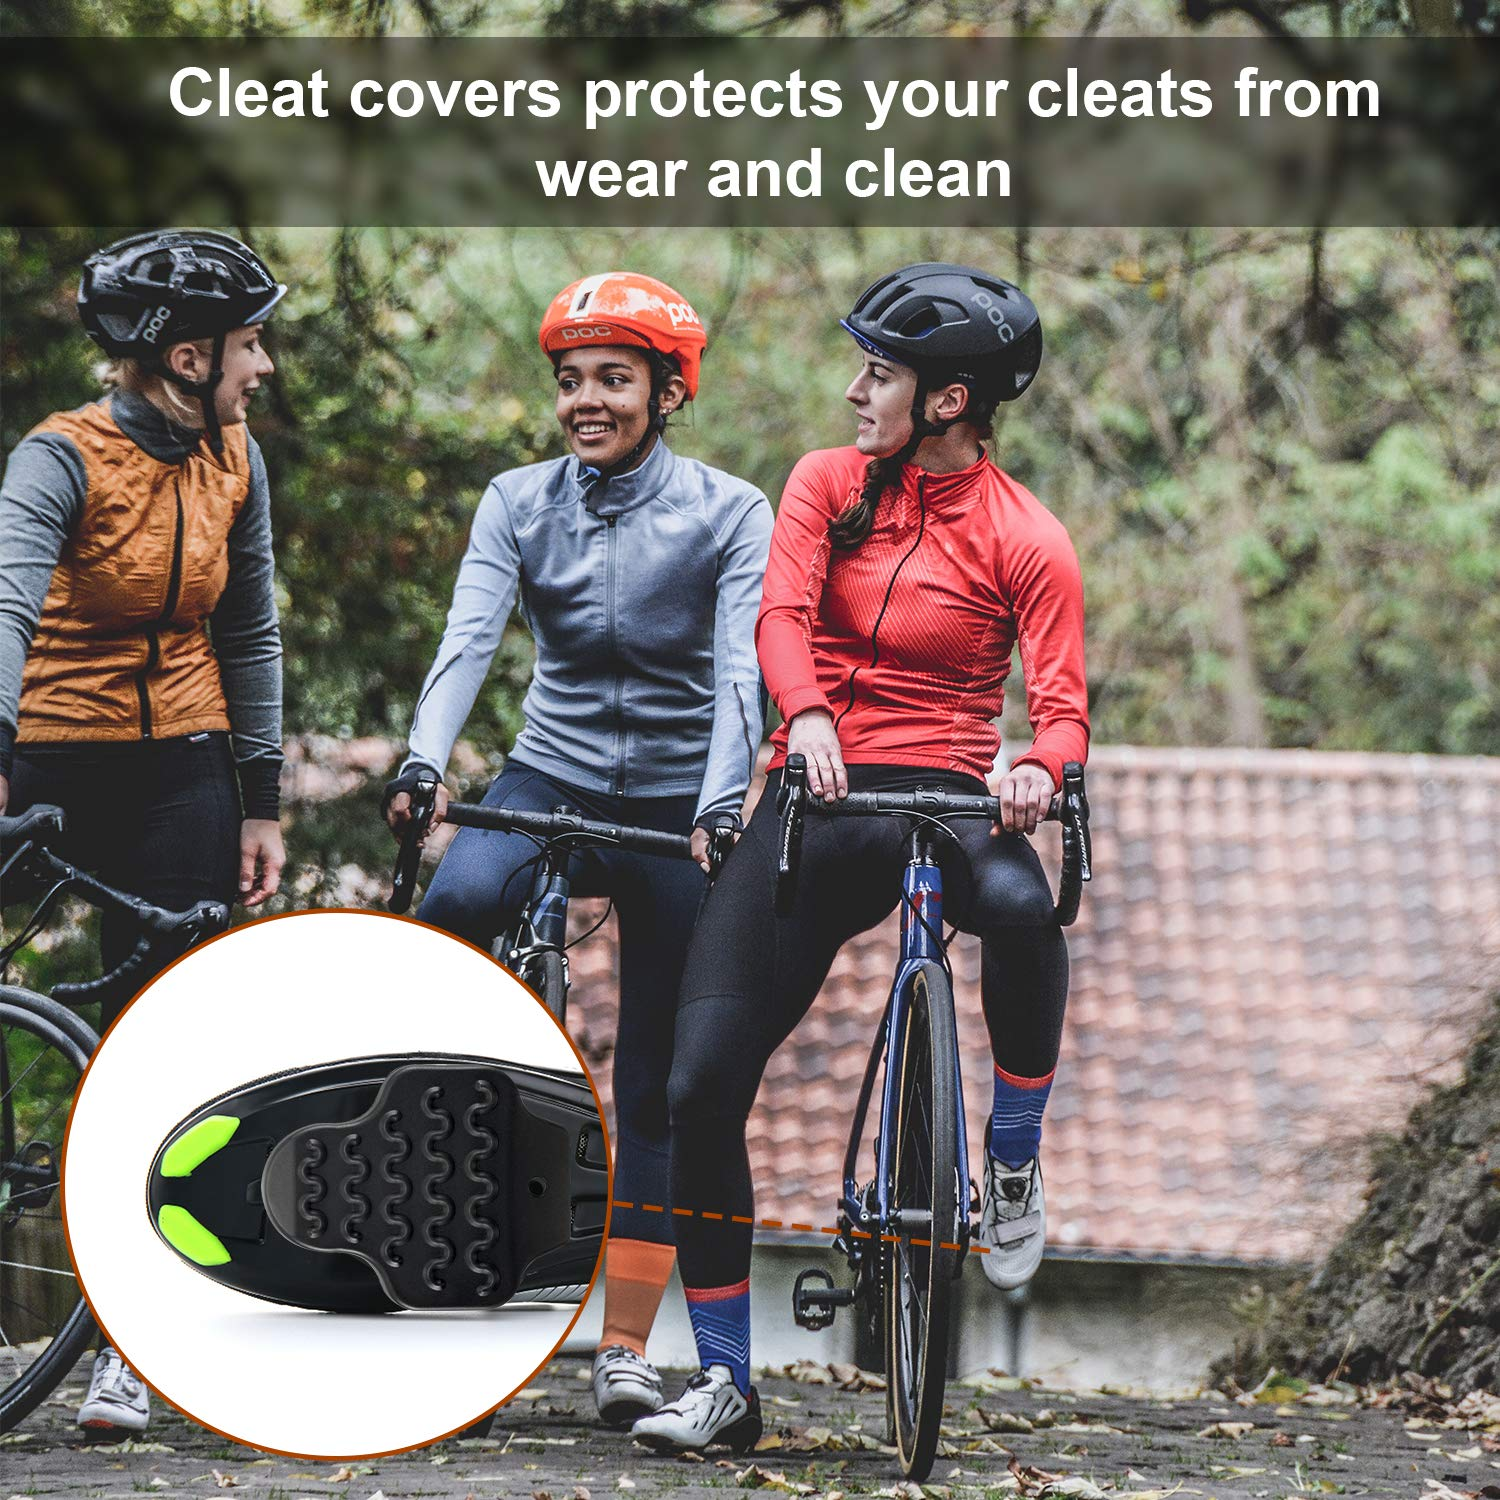 Etercycle Bike Cleats Cover Set Compatible with Look Delta//KEO Cleats,Perfect for Indoor Outdoor Cycling Shoes Road Grip Pedals Spining Class Cycle